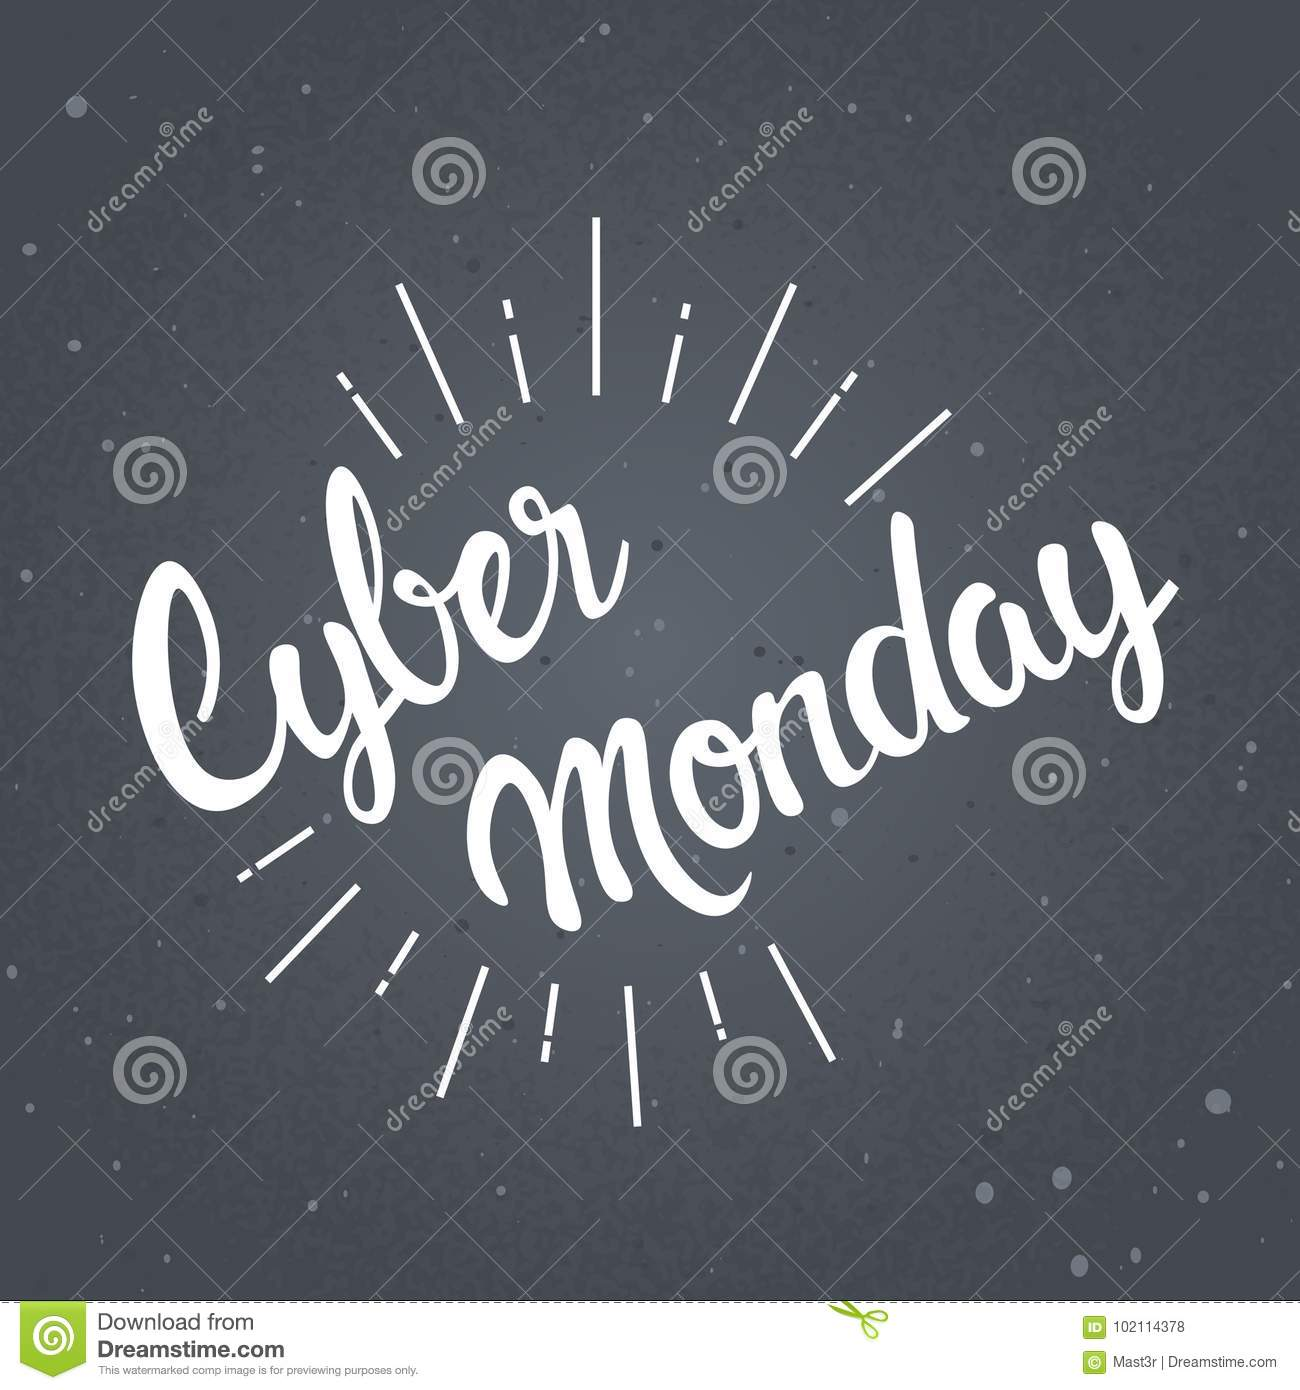 Cyber monday sticker design online shopping sale poster